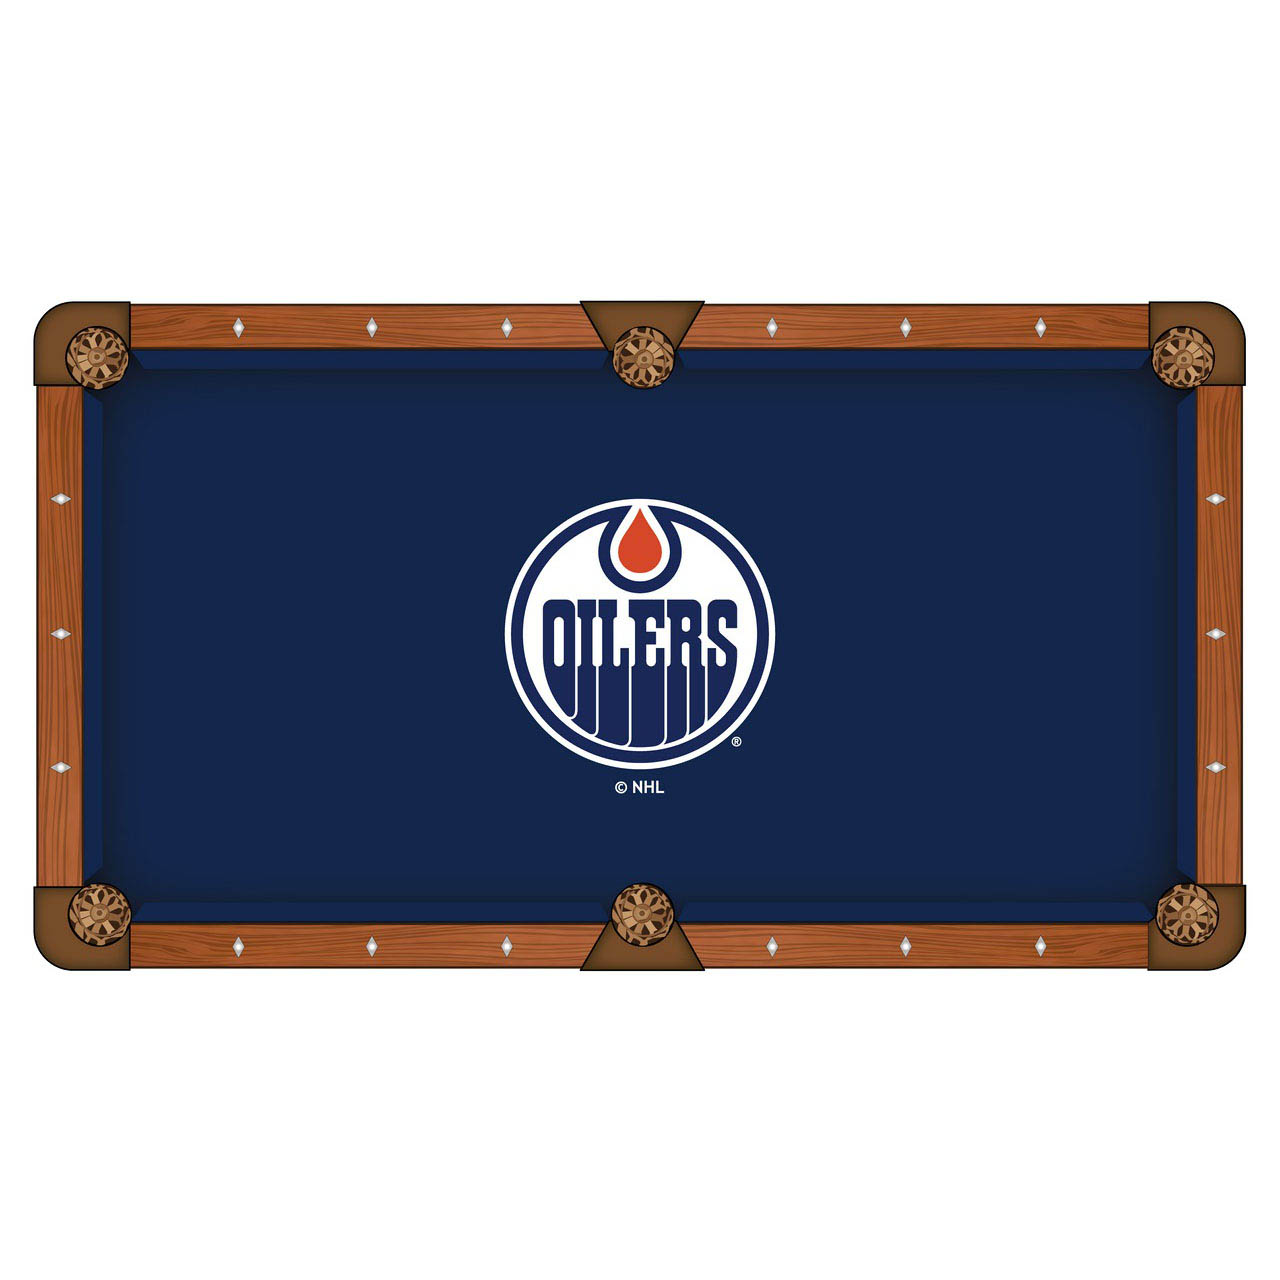 Check out the Edmonton Oilers Pool Table Cloth Product Photo